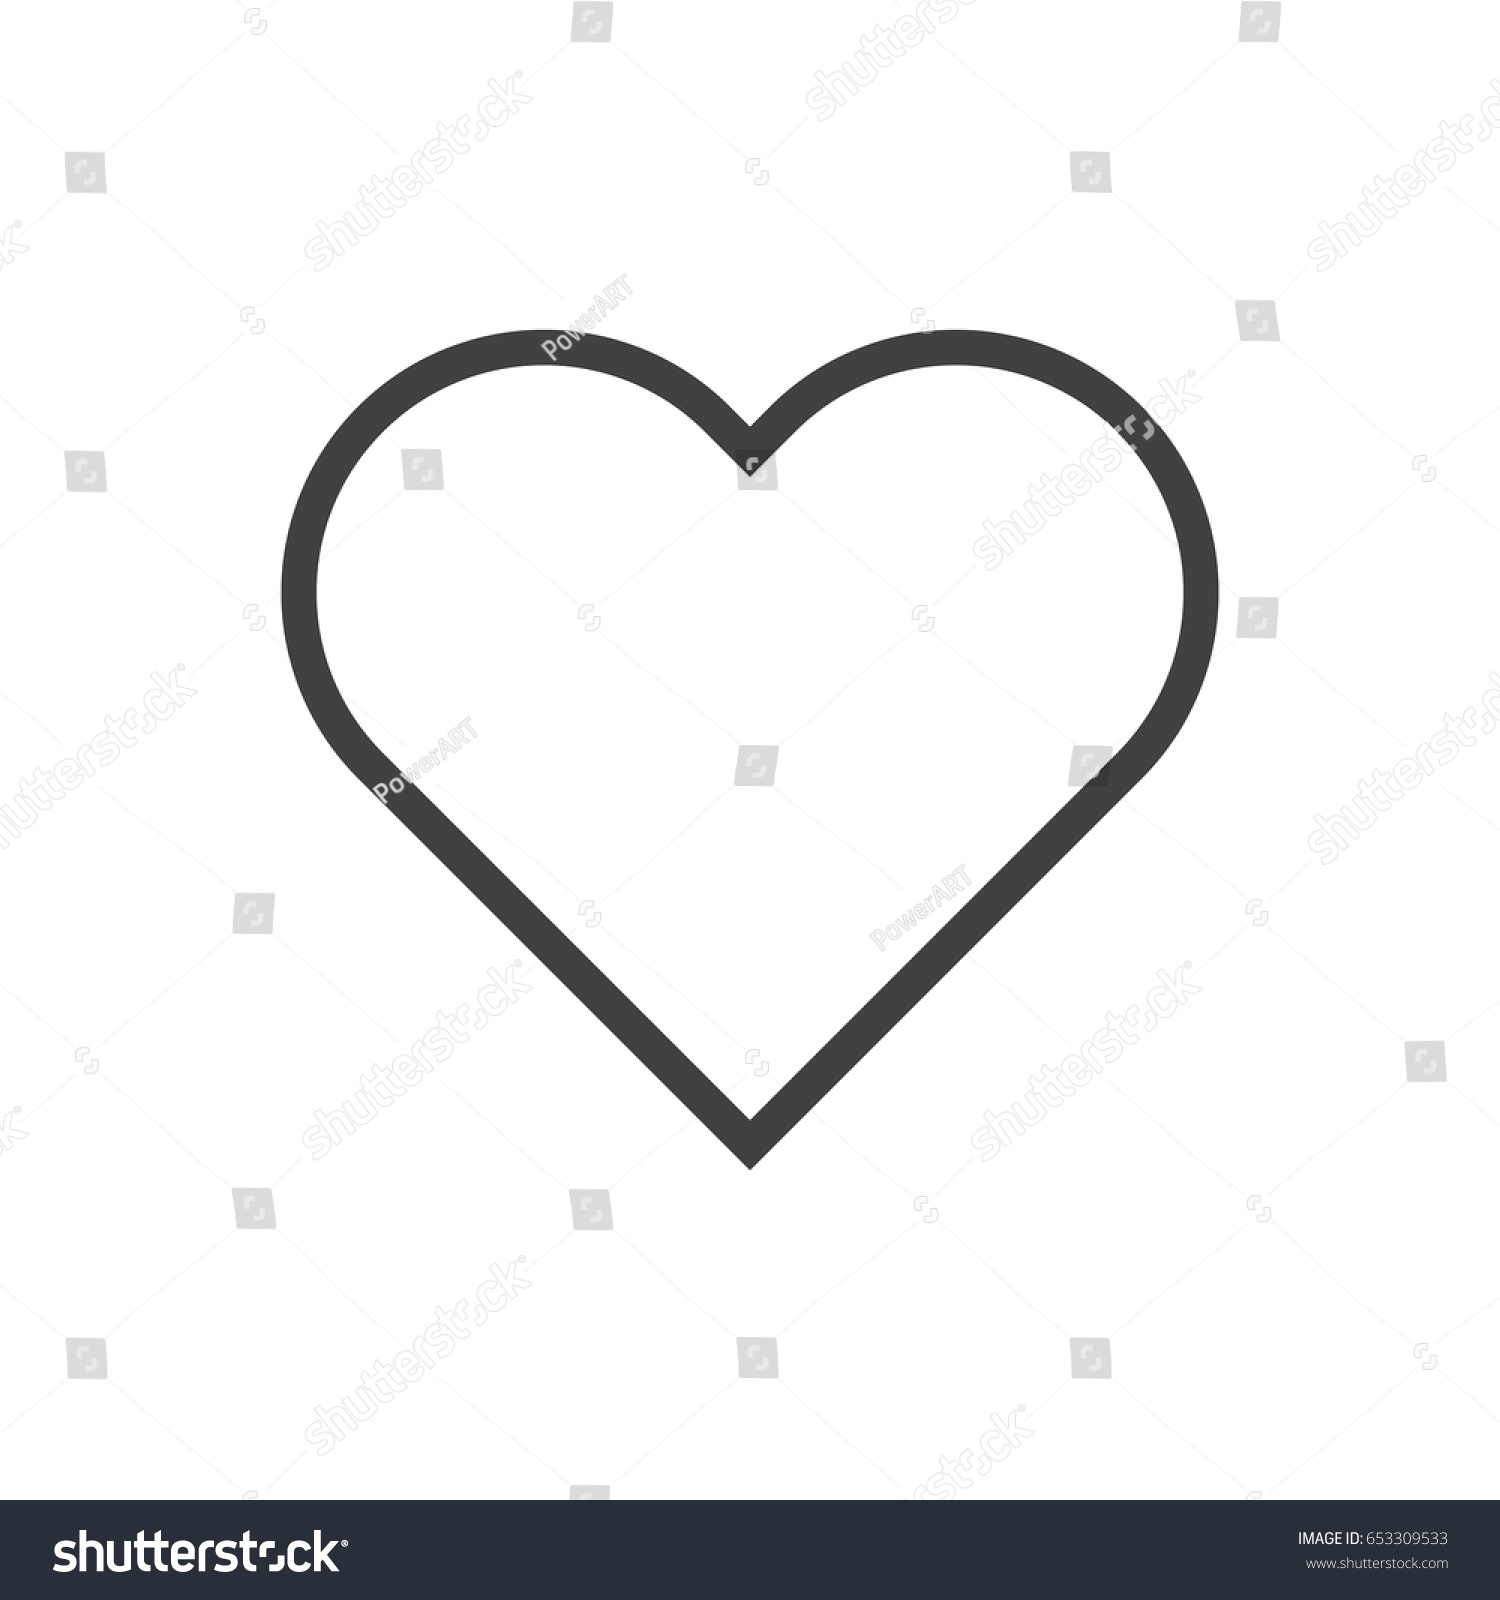 Isolted heart outline symbol on clean stock vector 653309533 isolted heart outline symbol on clean background vector soul element in trendy style buycottarizona Image collections